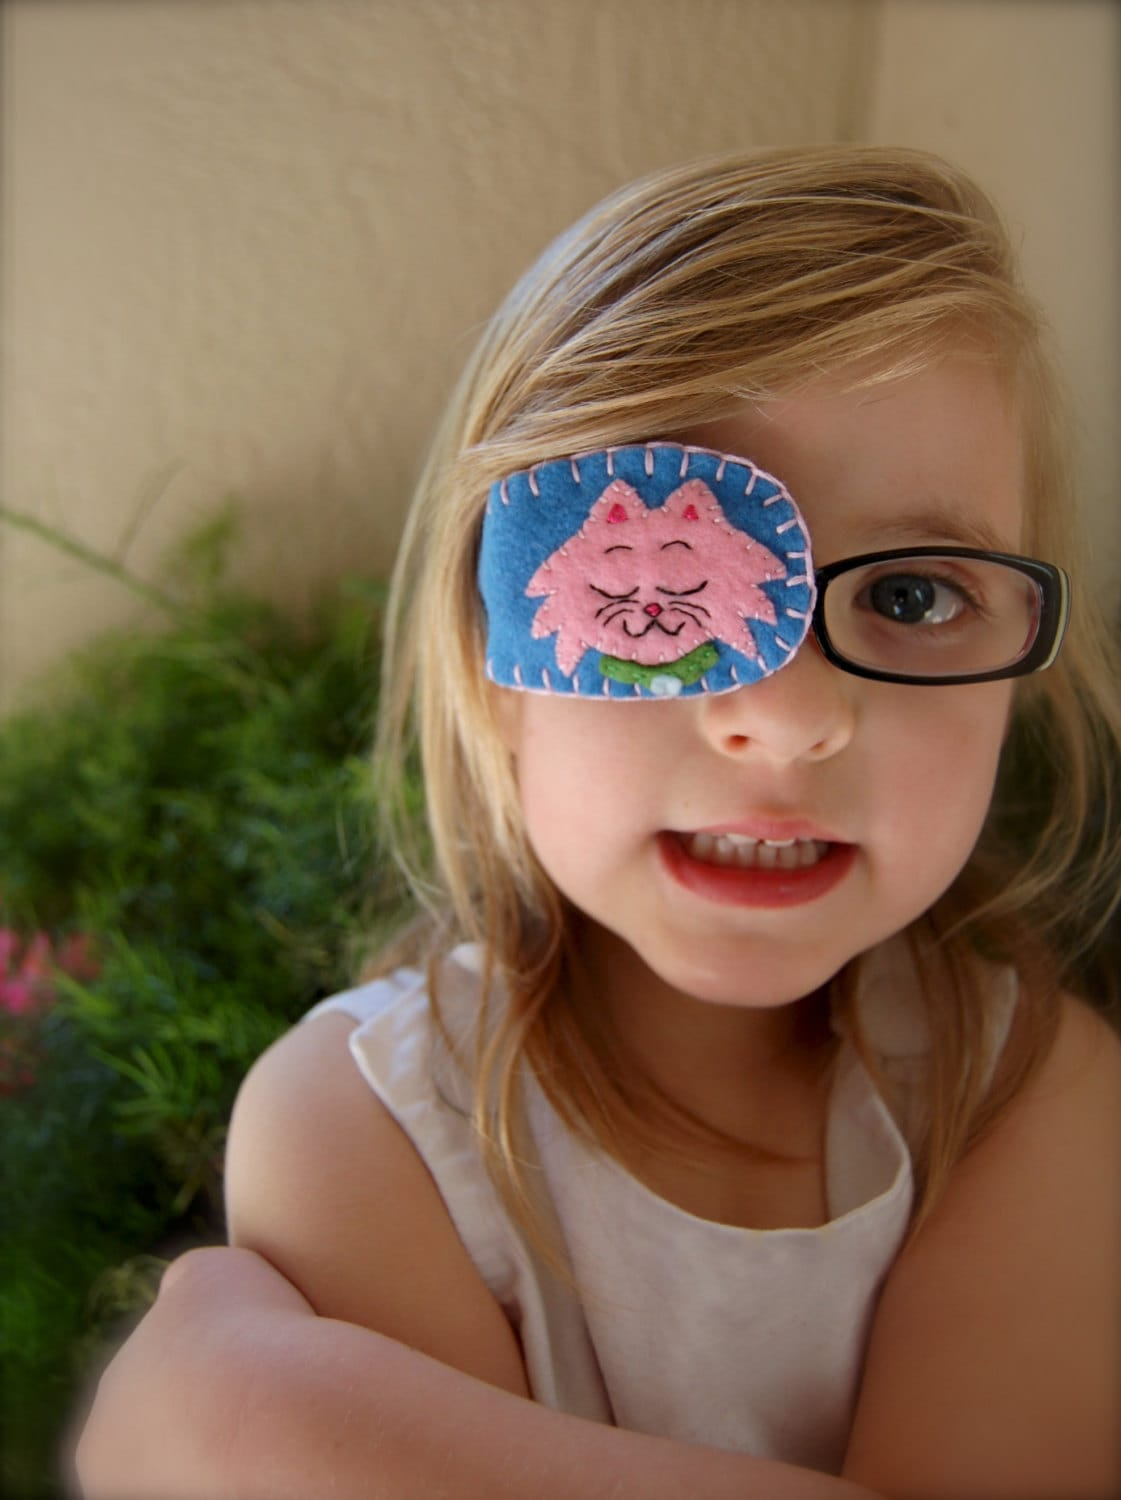 Pirate Eye Patch Template - Paging Supermom